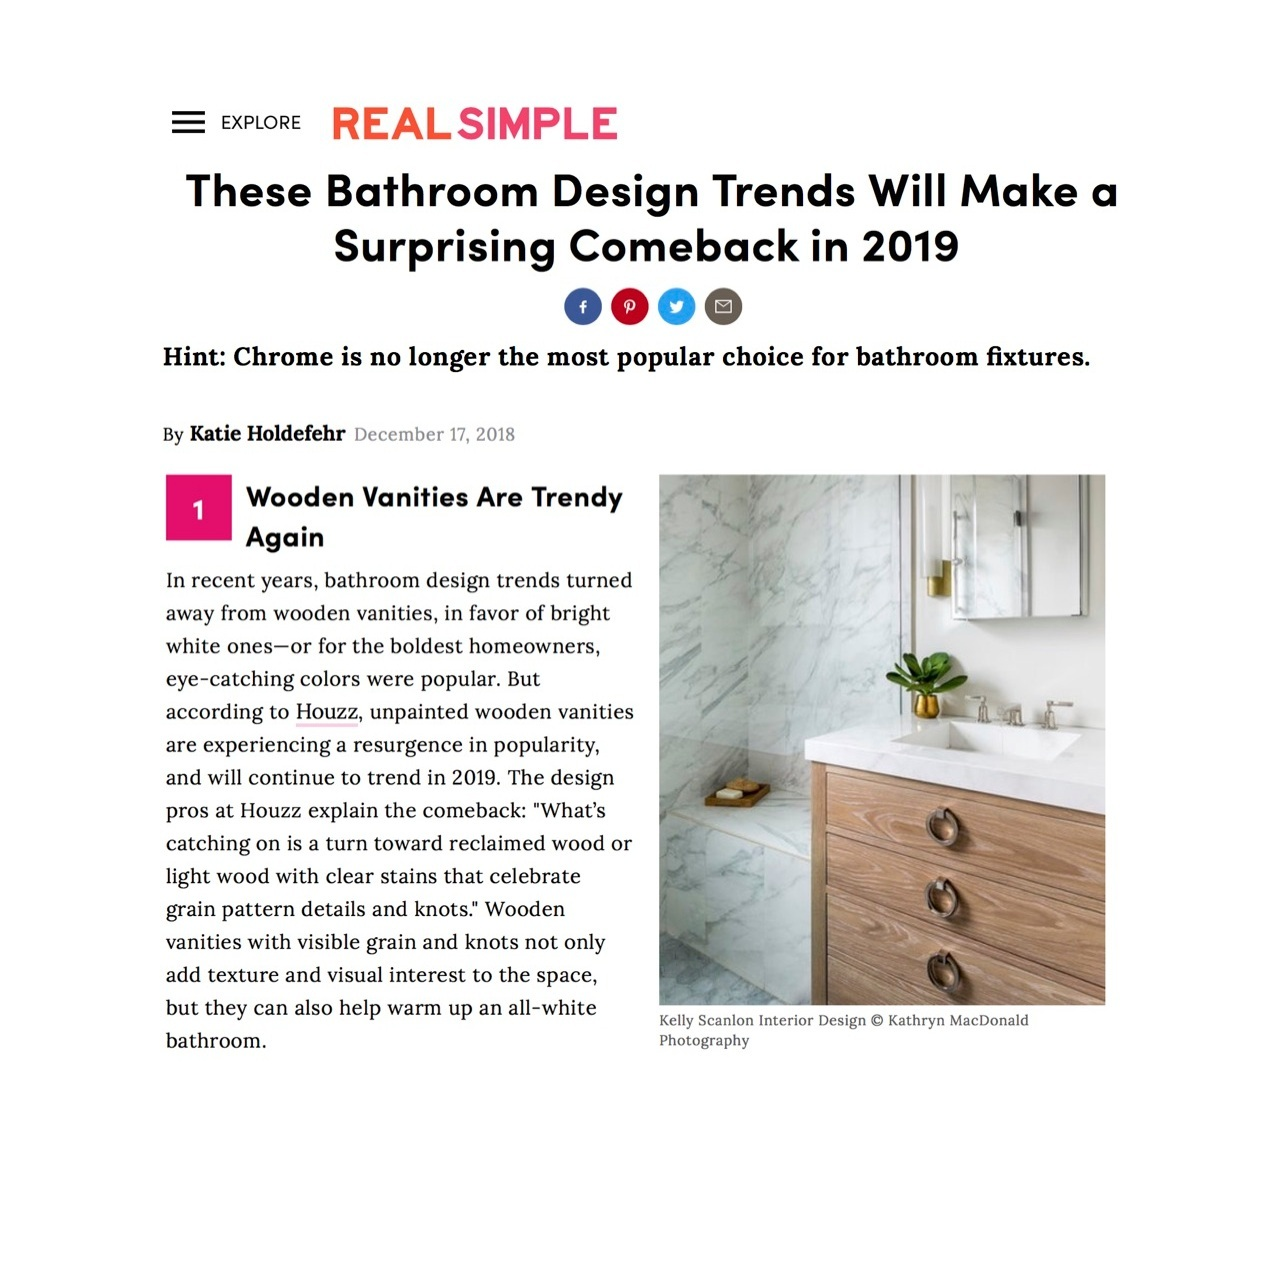 """Wooden vanities are trendy again…unpainted wooden vanities are experiencing a resurgence in popularity and will continue to trend in 2019""  Kelly Scanlon Interior Designs photo"